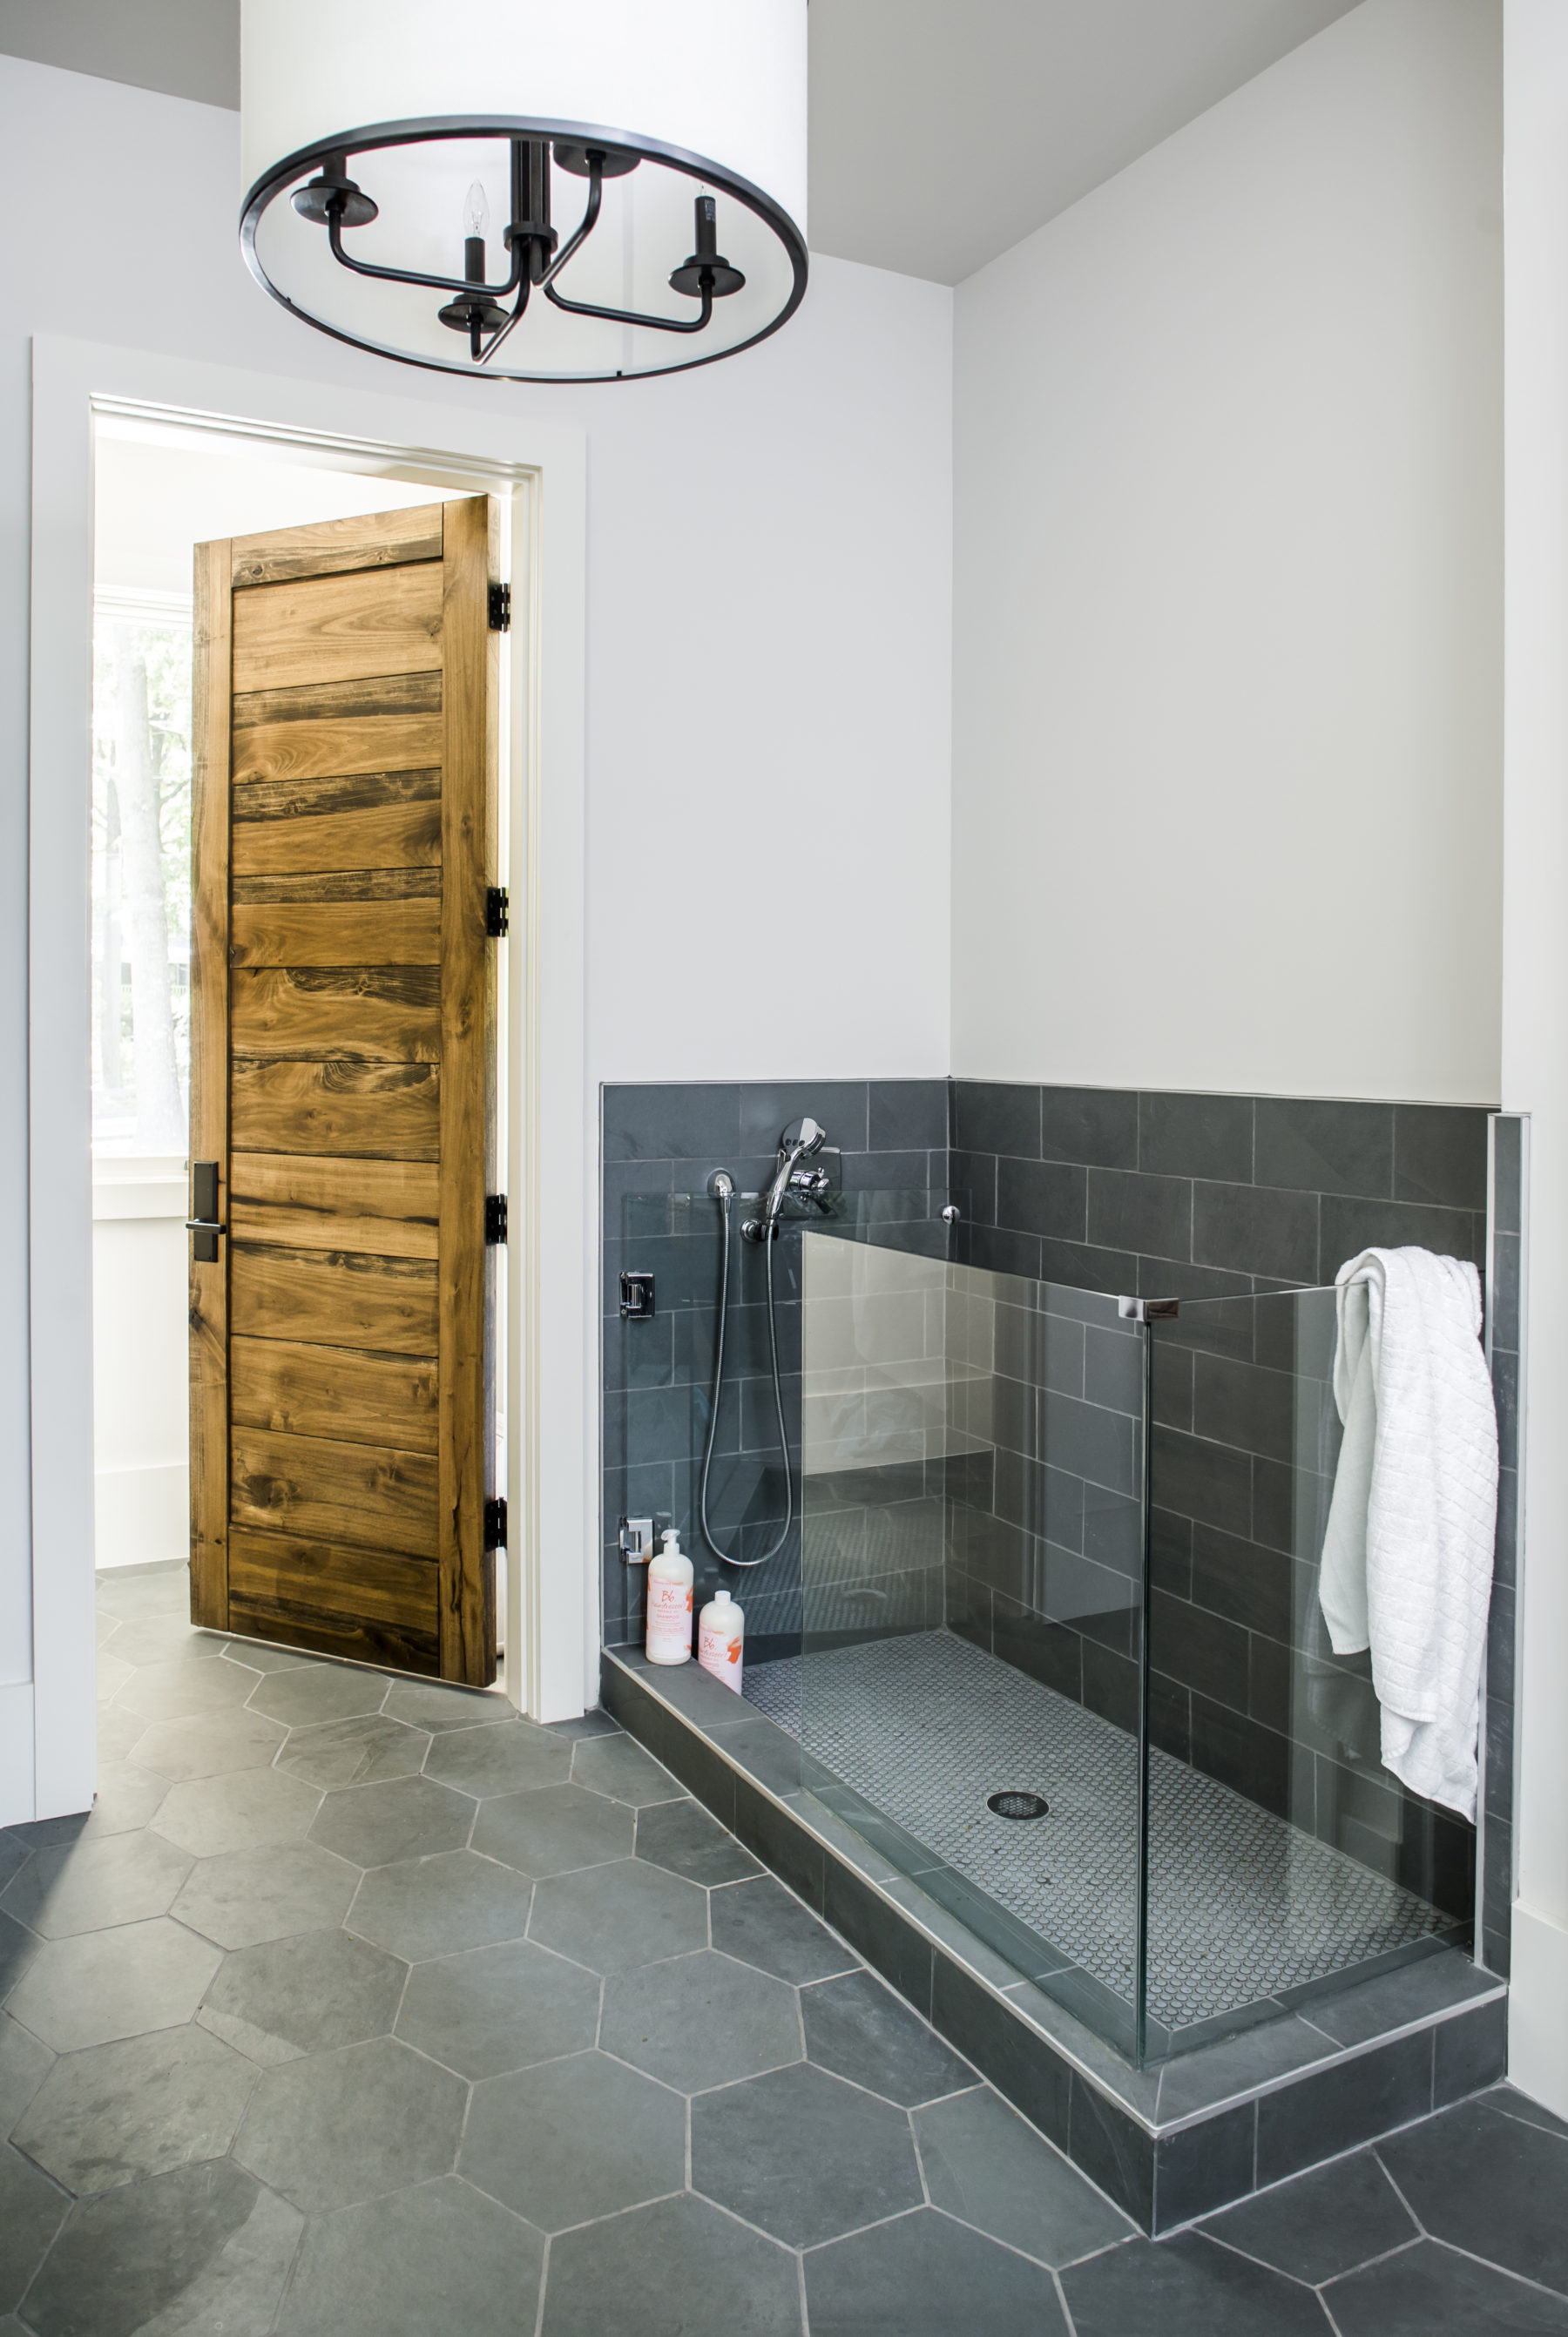 In residence by Harrison Design, the mudroom includes dog wash with slate hexagonal easy cleaning tile